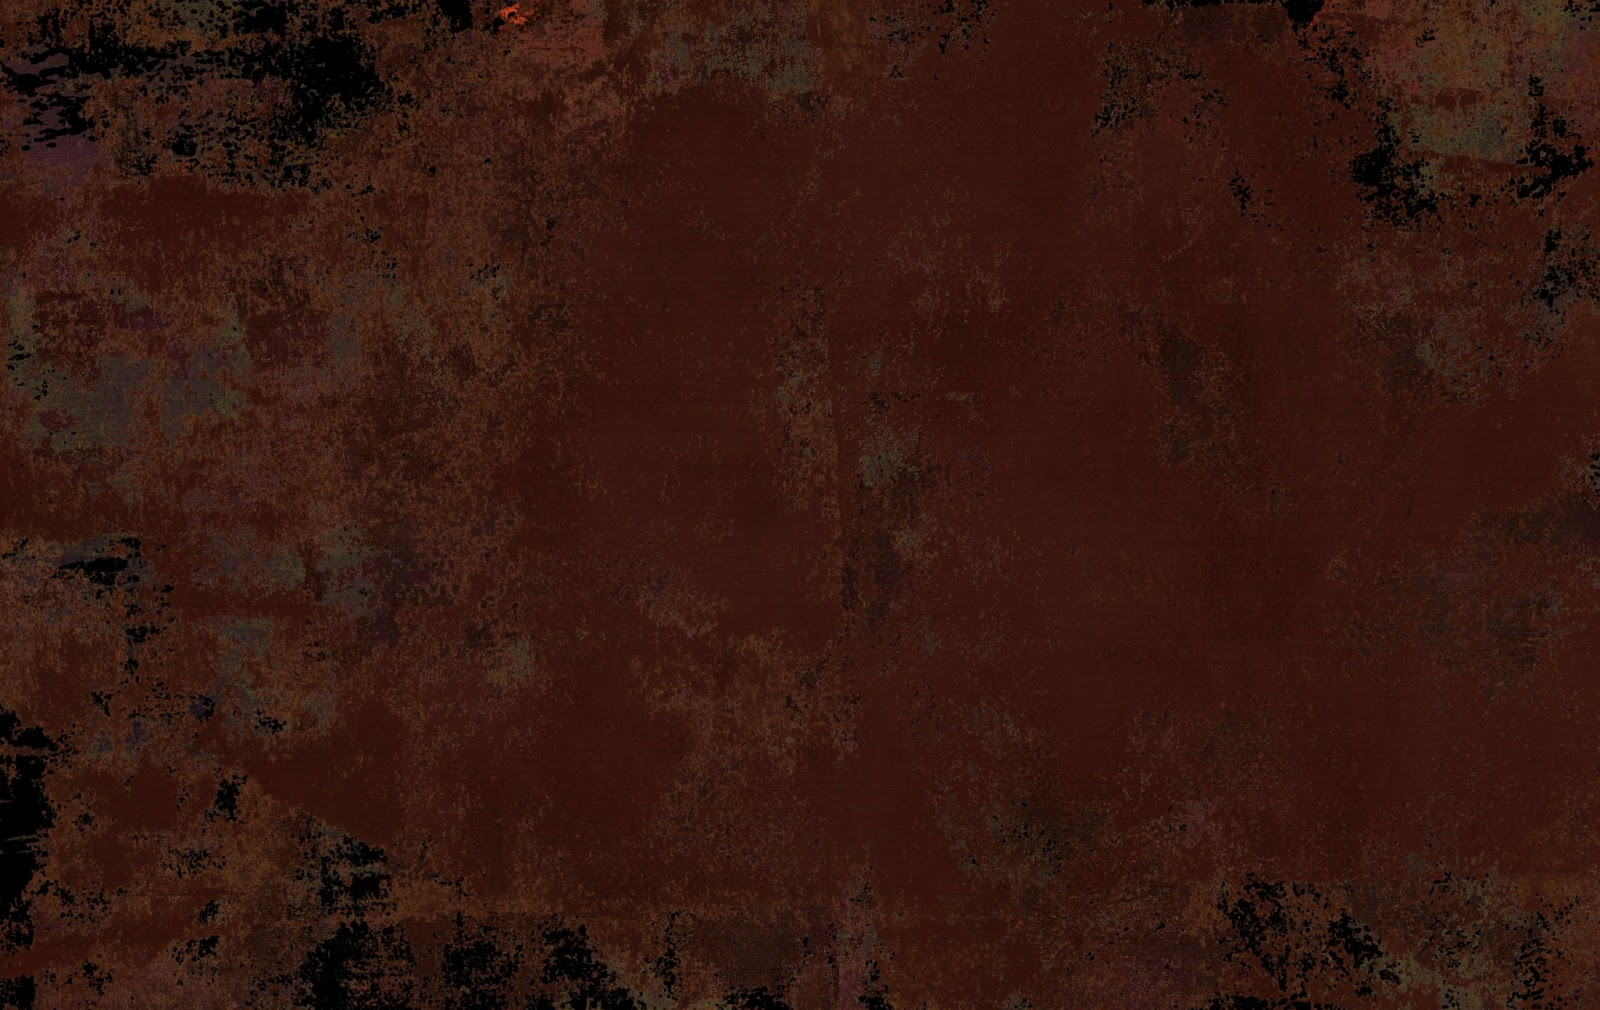 grunge rusty background texture - photo #1